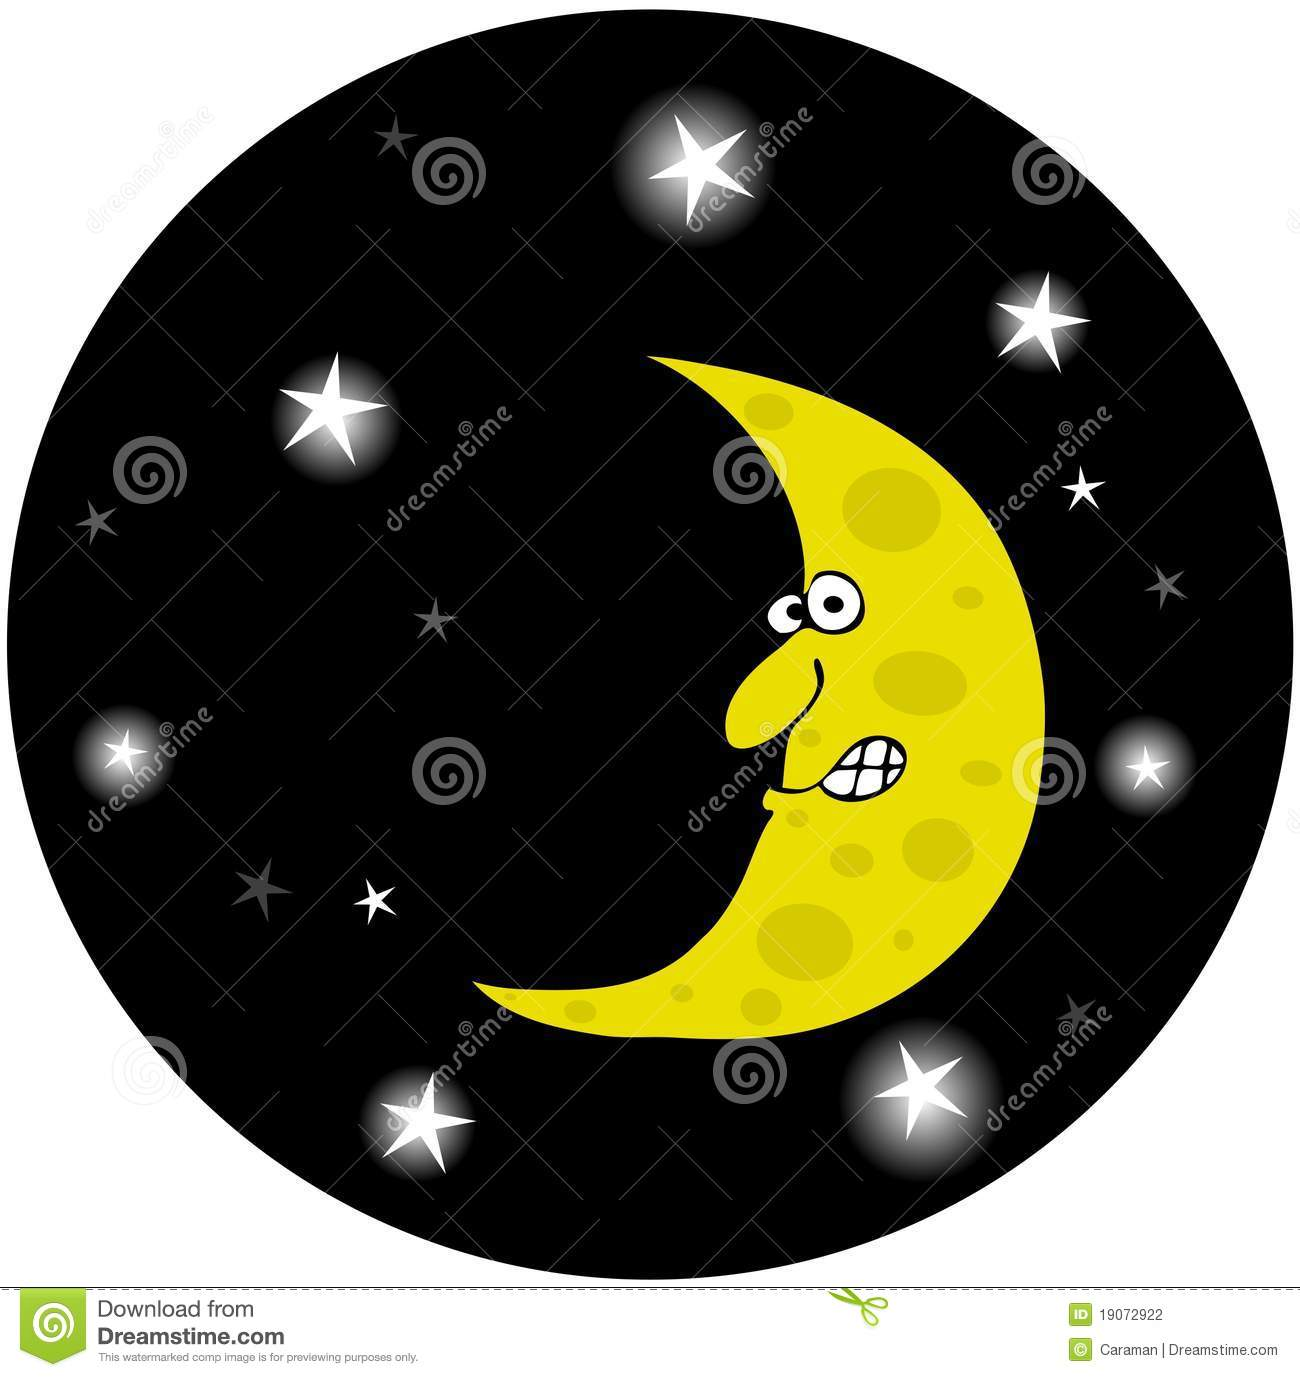 Depicts A Half Moon With A Face In A Star Filled Night Sky